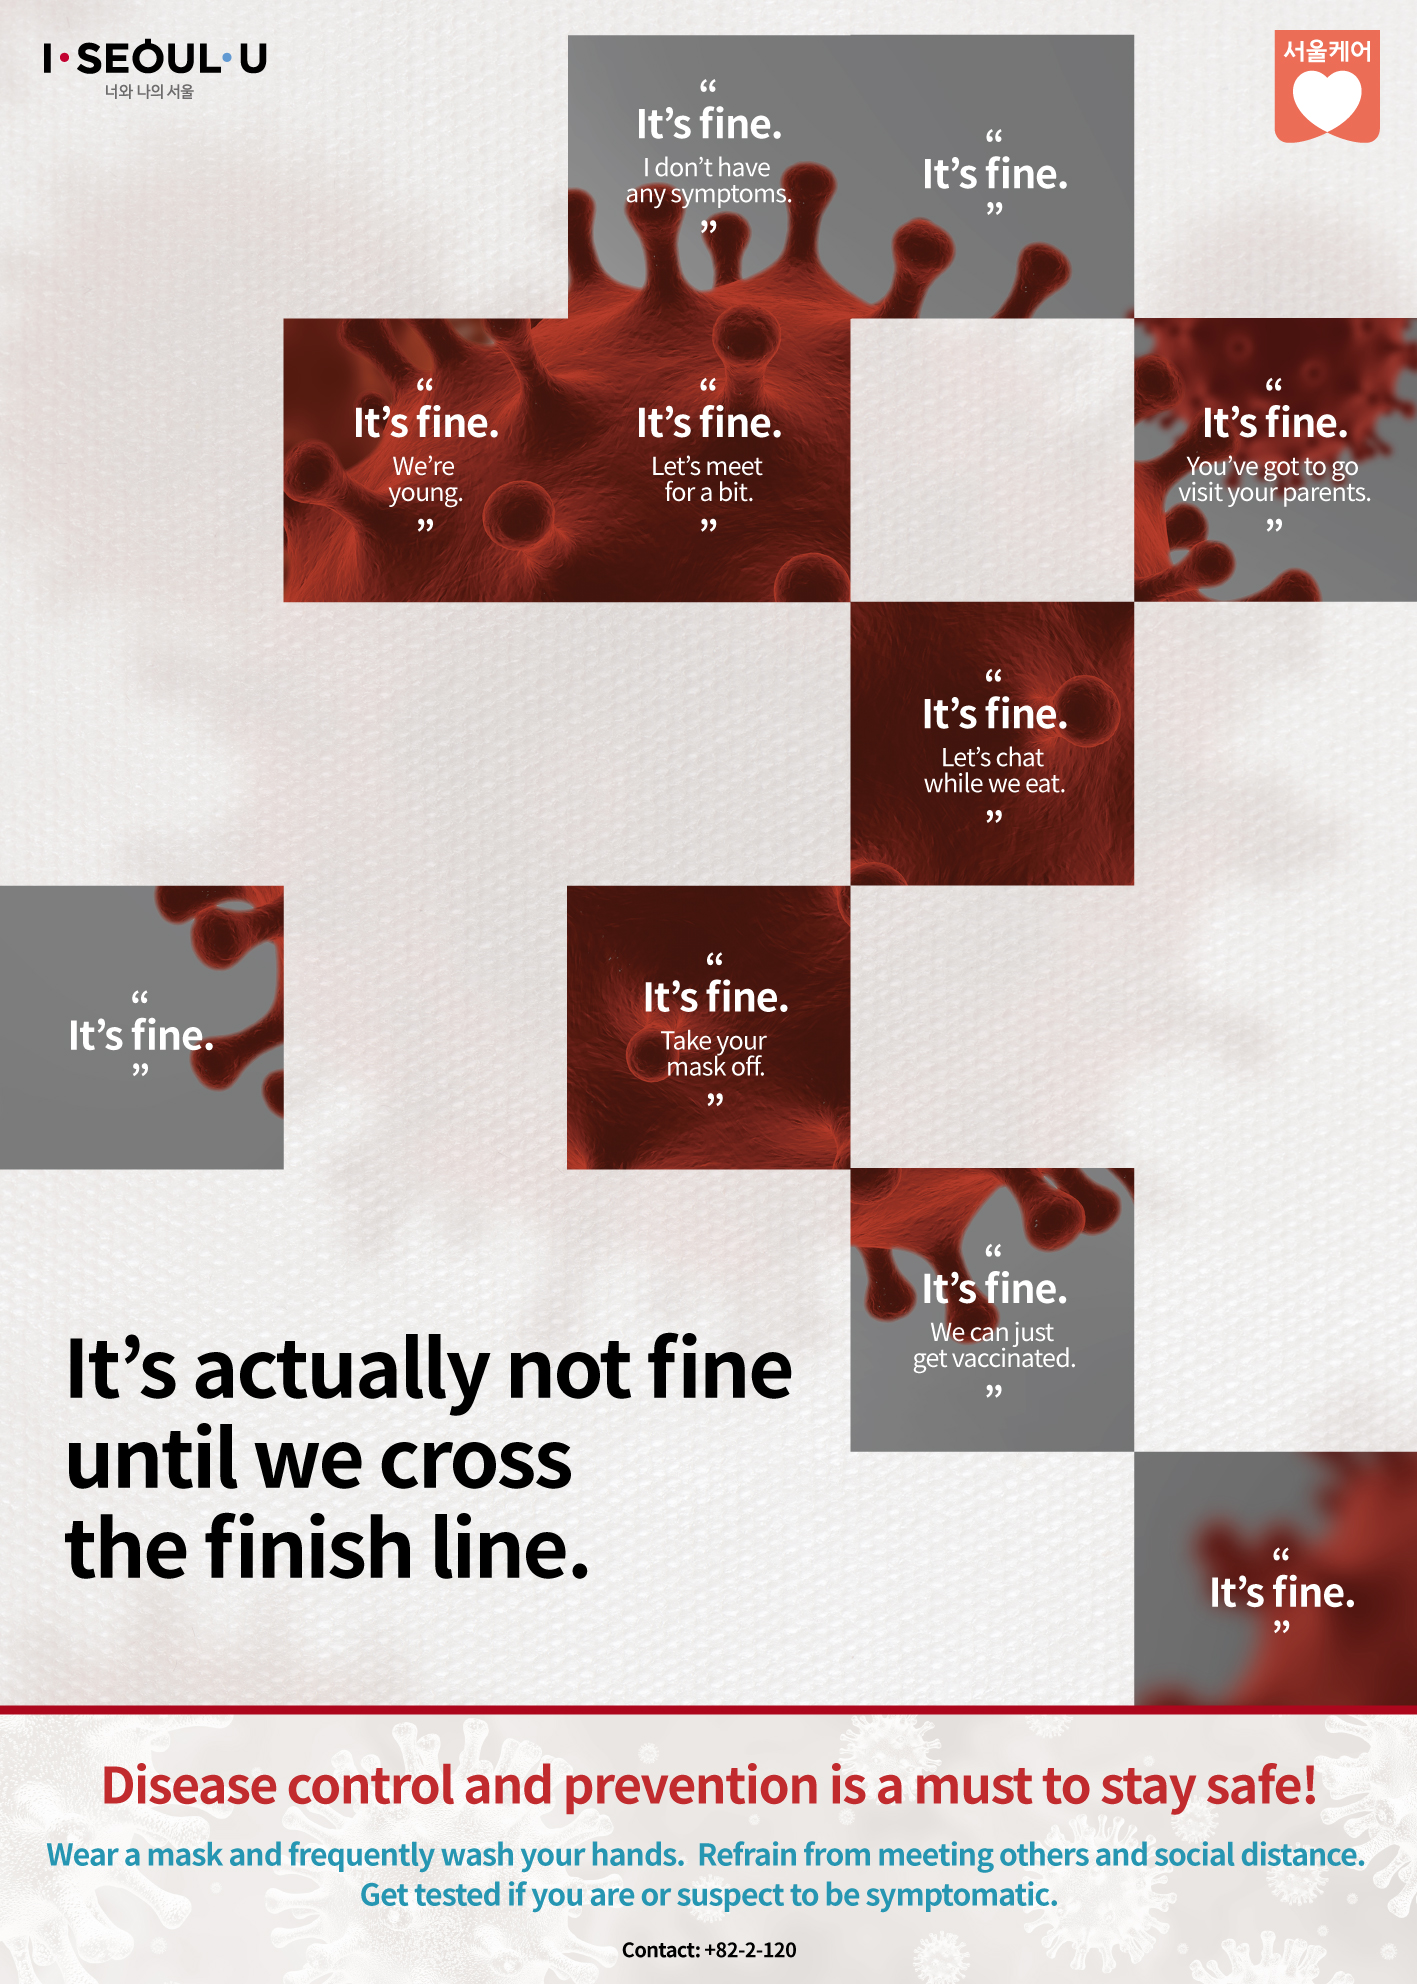 It's actually not fine until we cross the finish line